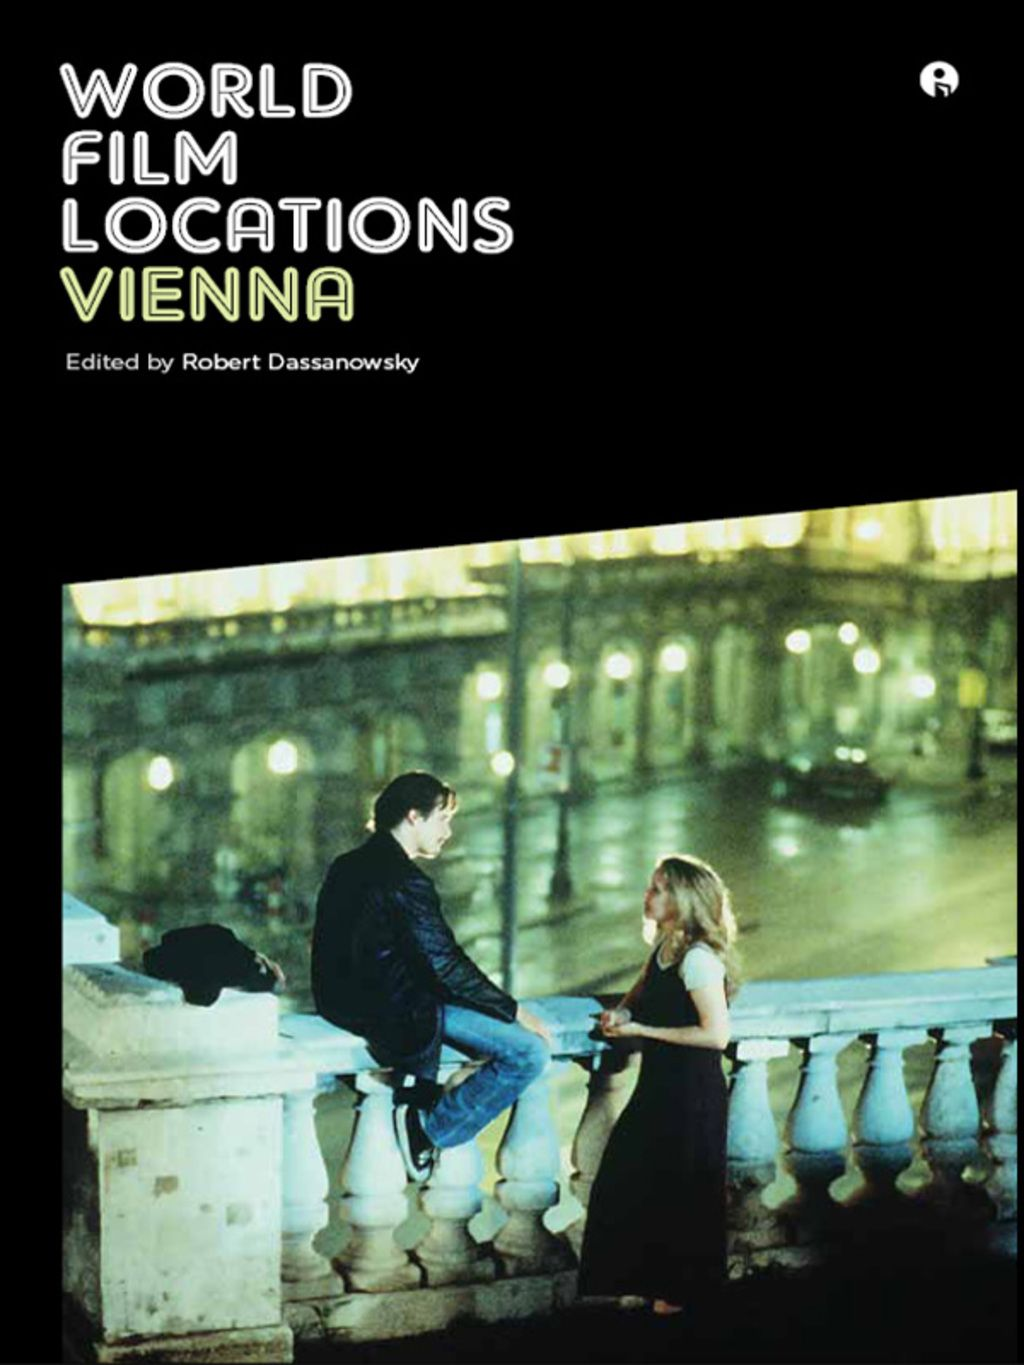 World Film Locations Vienna (eBook) Filming locations